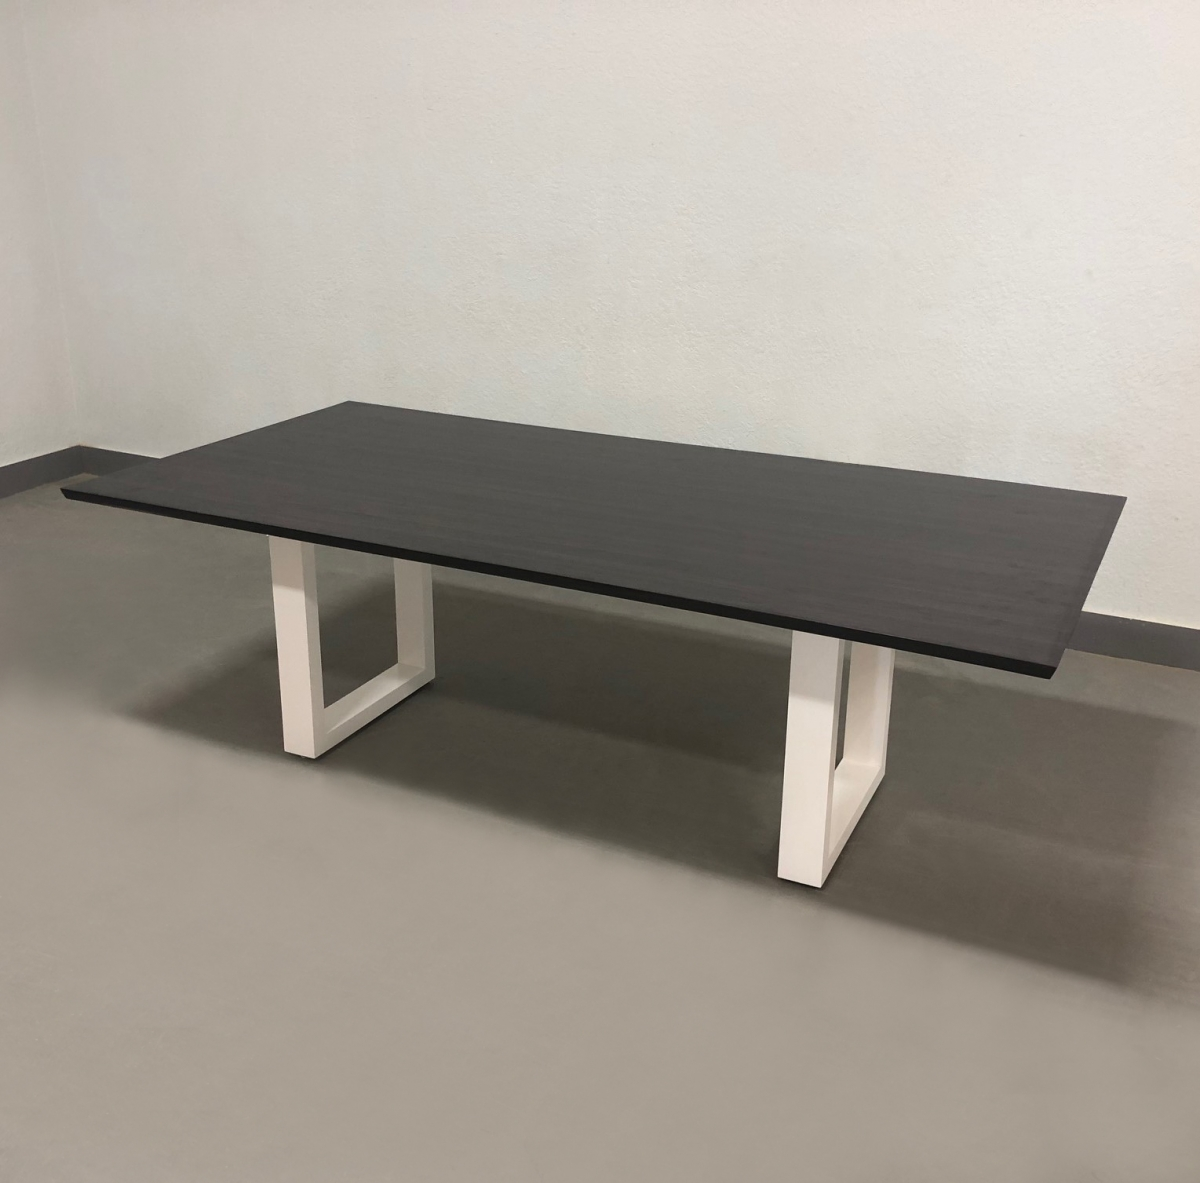 Axis X2 Rectangular Meeting Table with Laminate Top